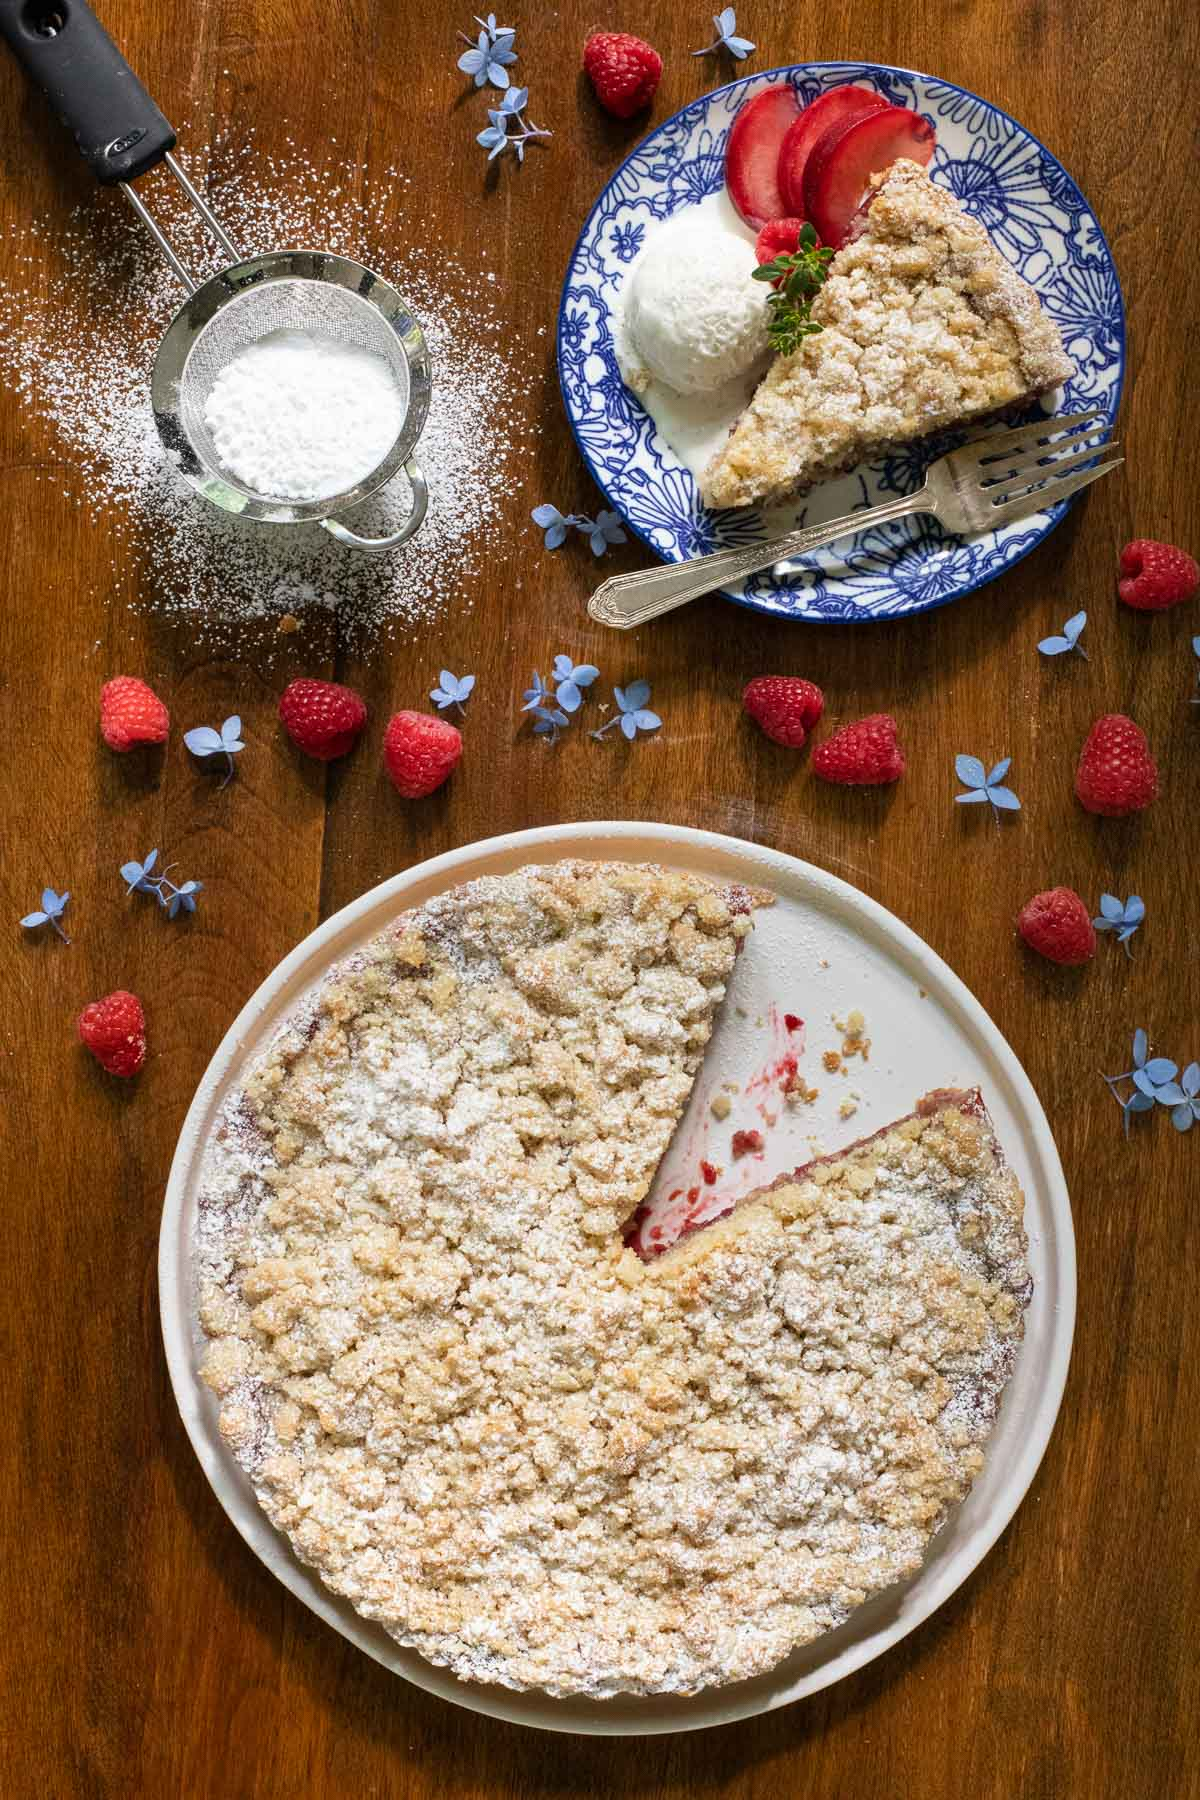 Vertical overhead photo of a Plum Raspberry Crumb Tart on a wood table with a slice of the tart on a separate plate with fresh plums, raspberries and a scoop of ice cream.